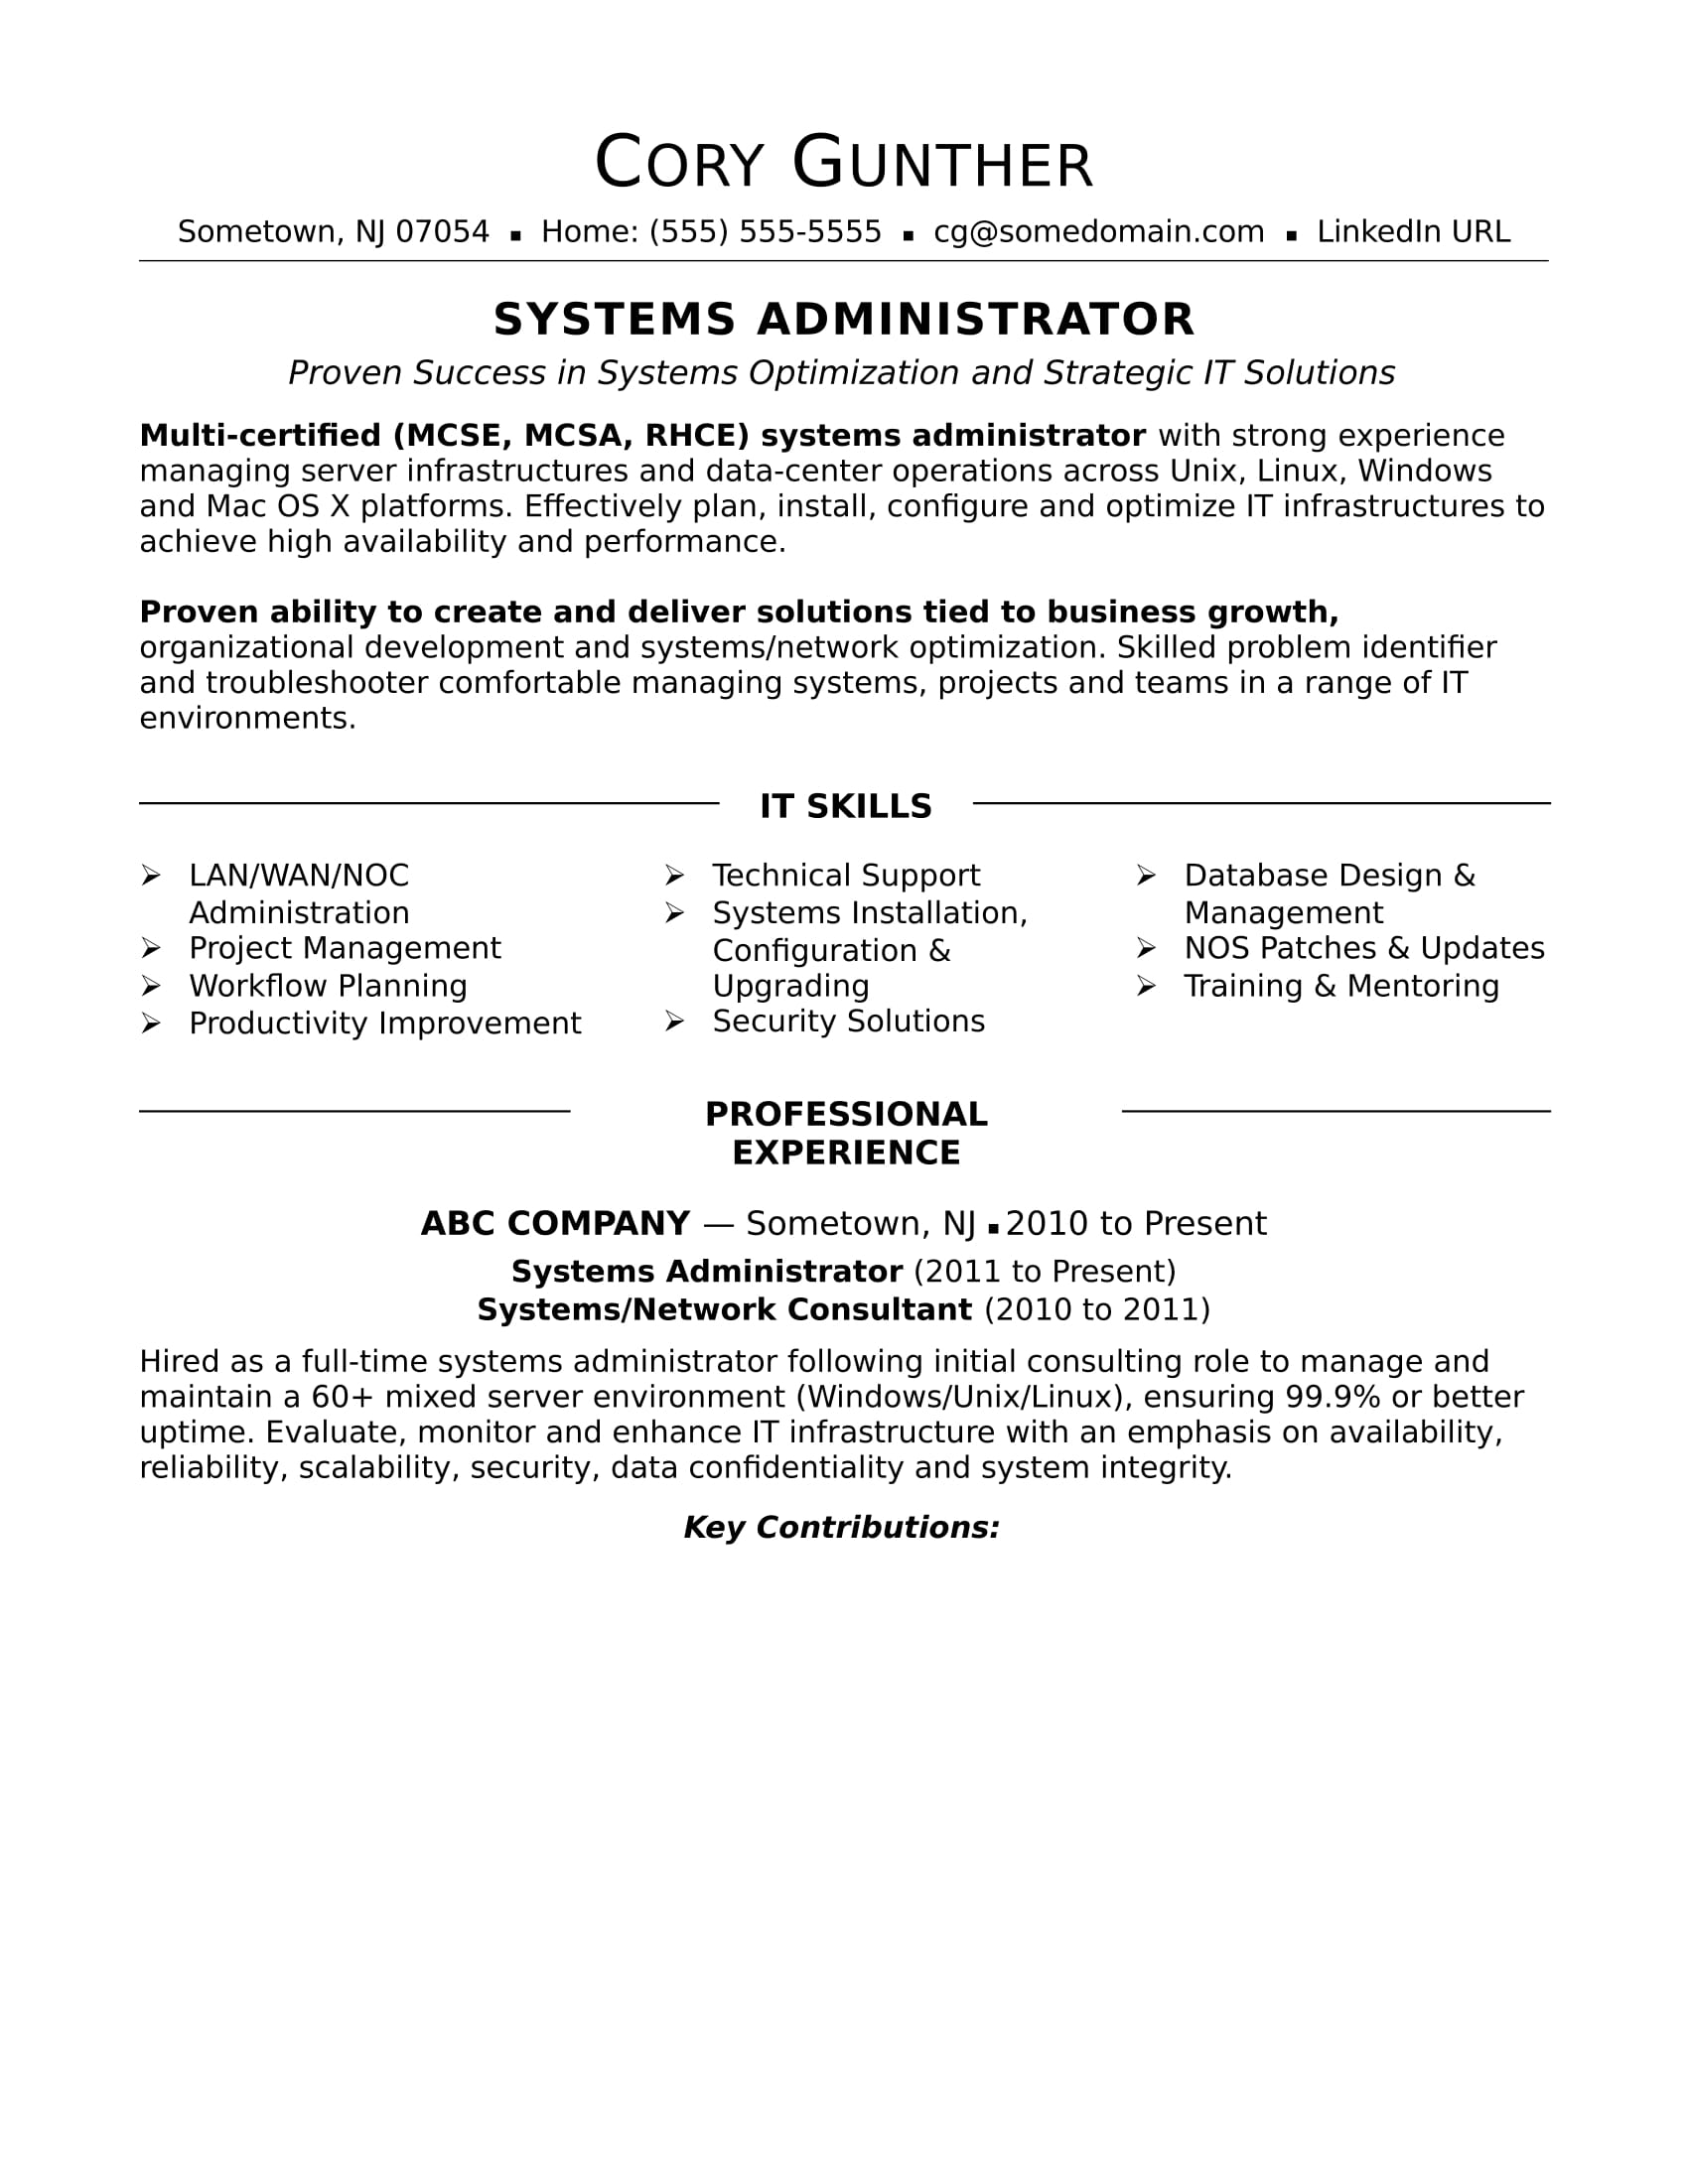 S Le Resume For An Experienced Systems Administrator